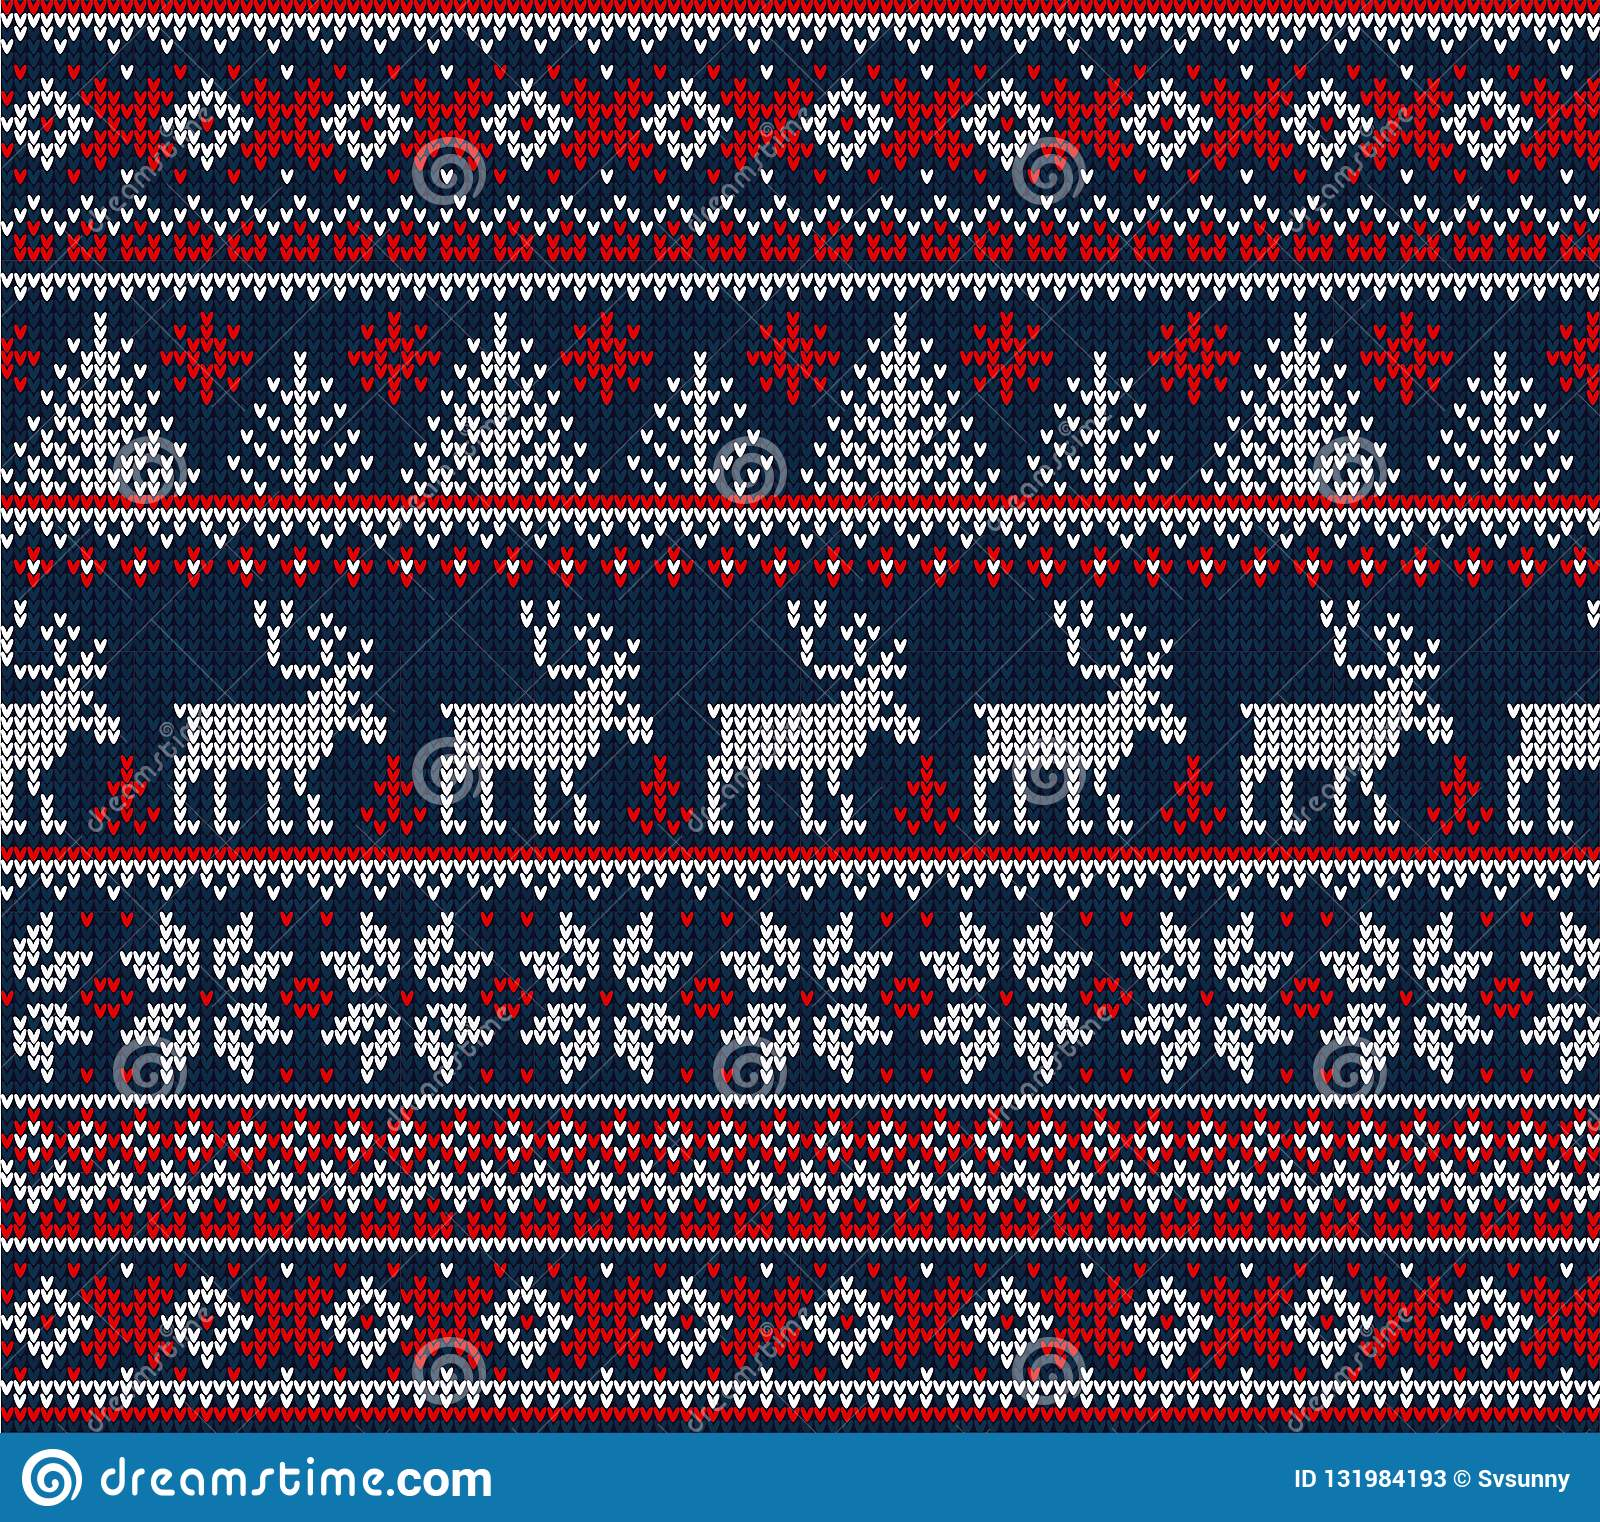 Ugly Sweater Merry Christmas Happy New Year Seamless Pattern Frame Stock Vector Illustration Of Christmas Party 131984193